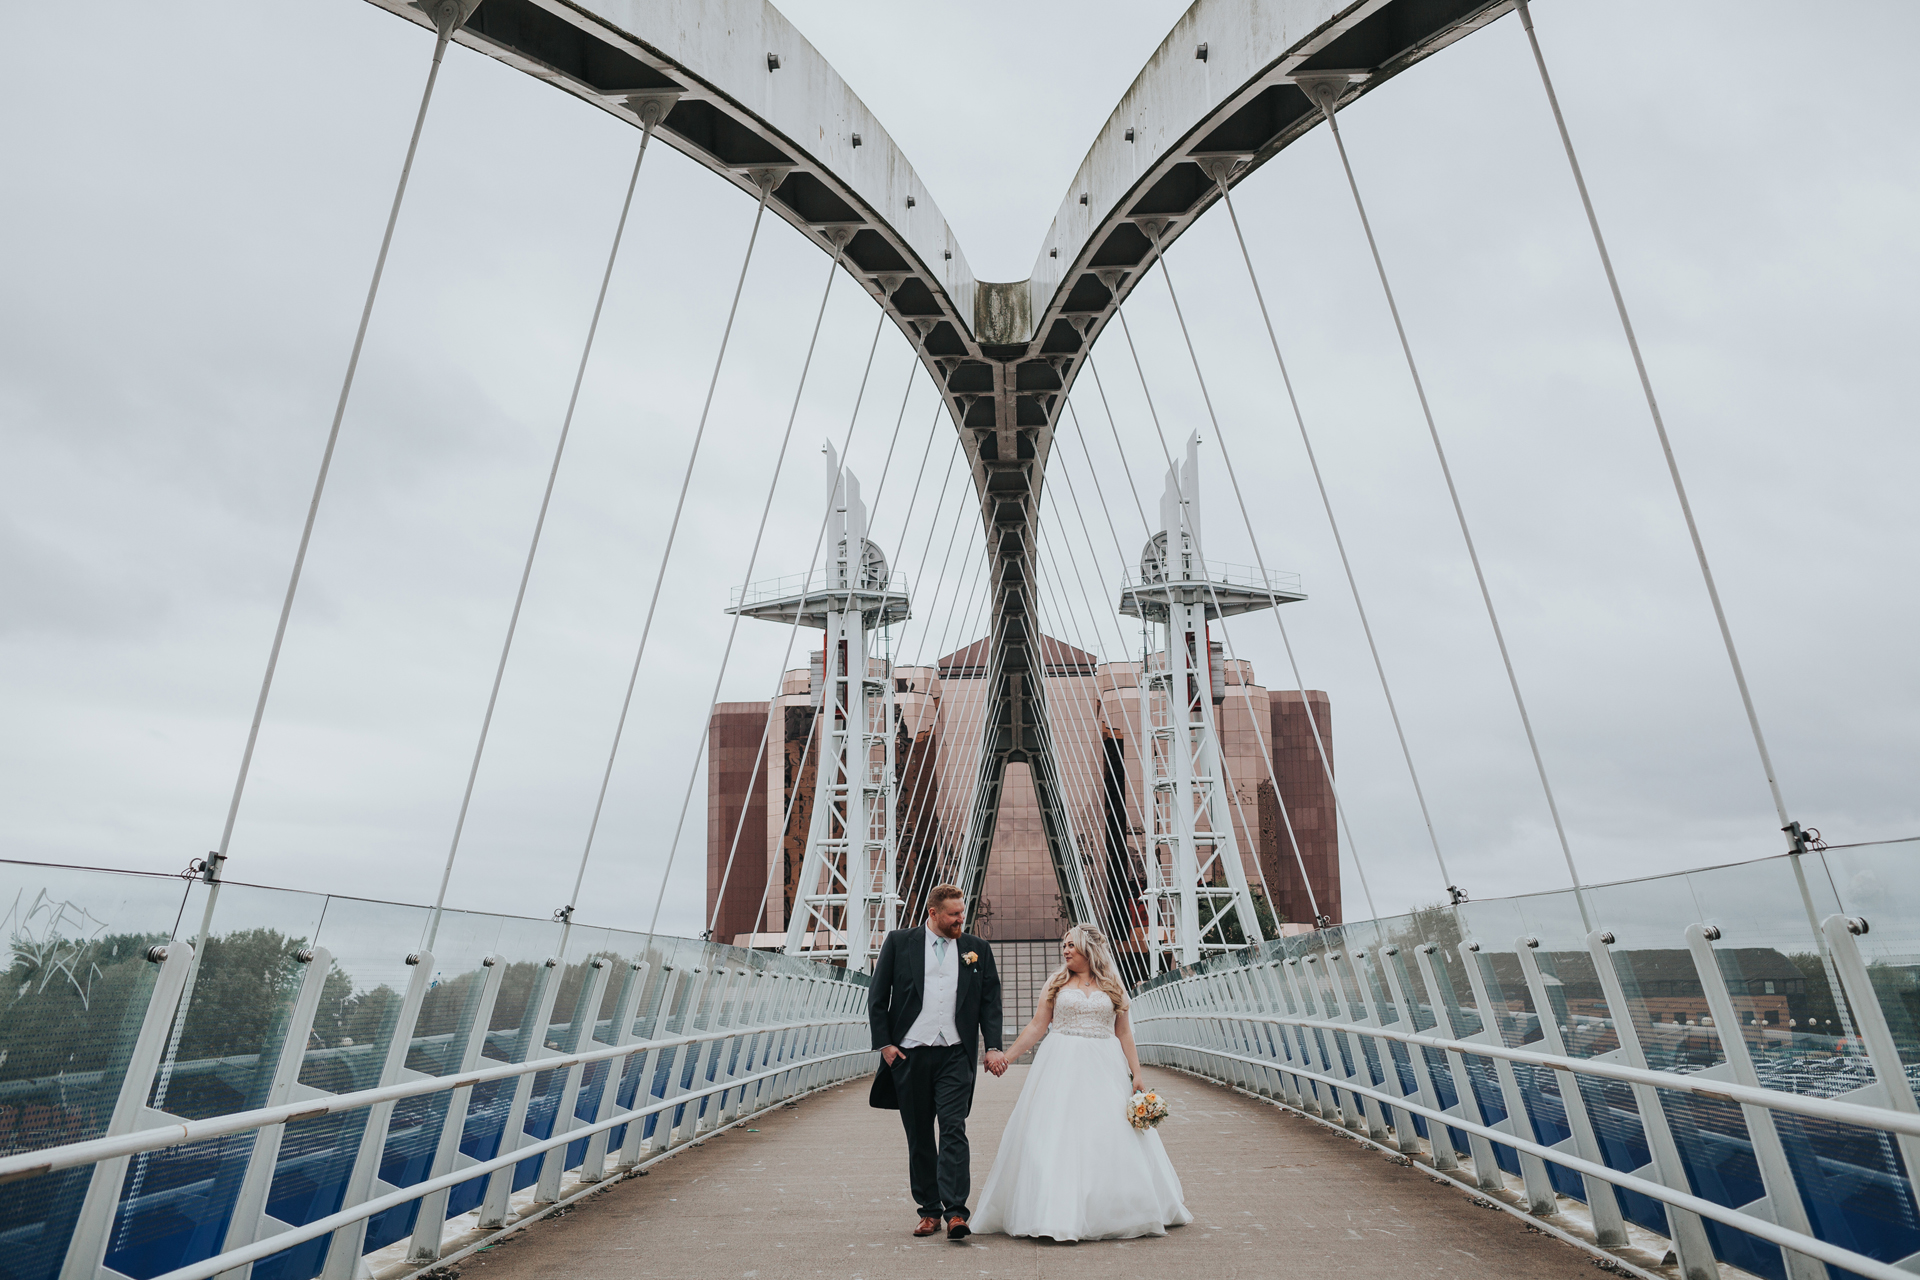 Bride and groom walk down the bridge together.